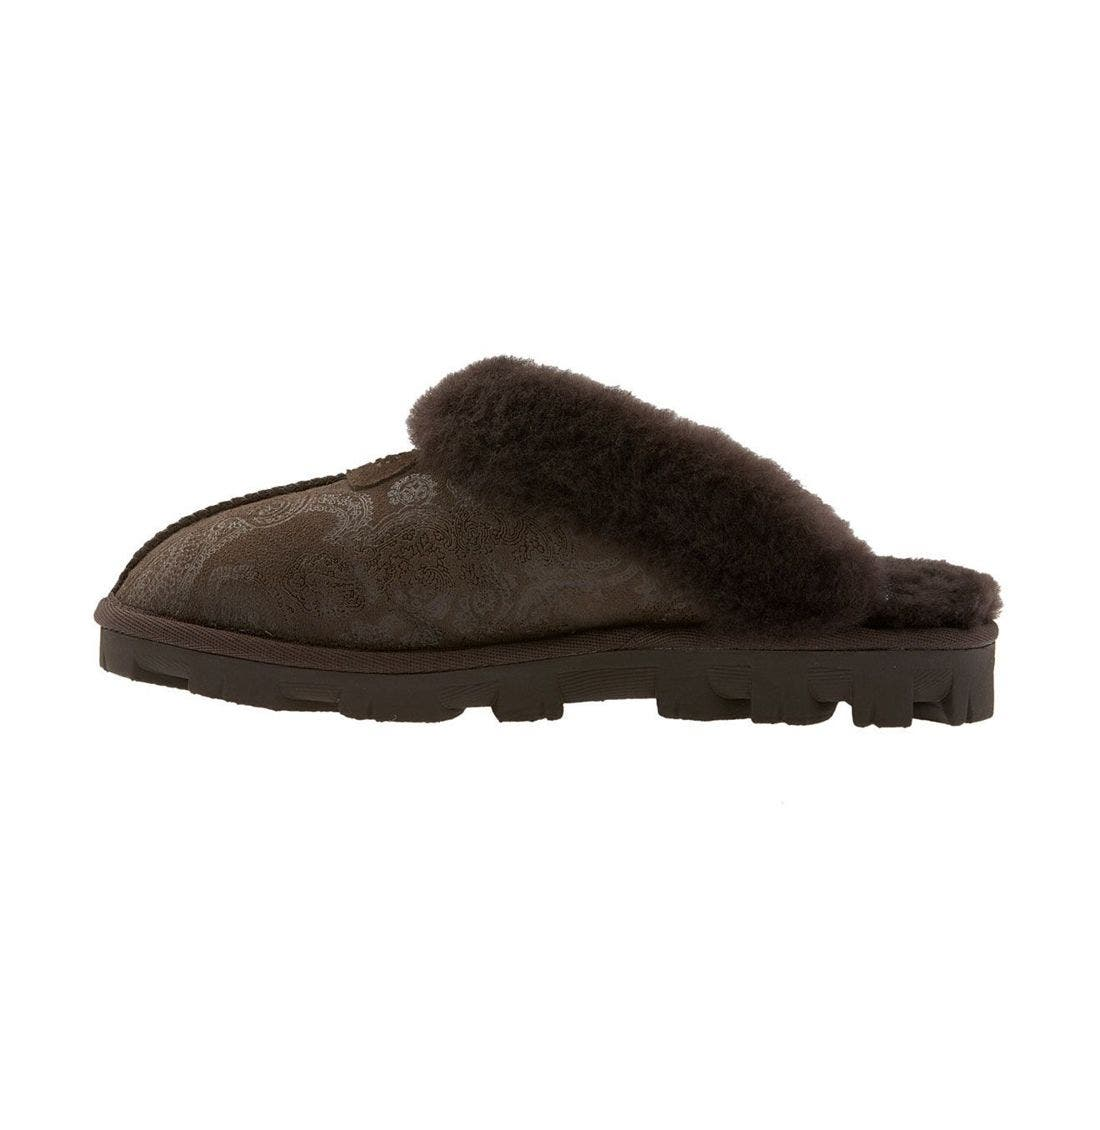 ,                             Genuine Shearling Slipper,                             Alternate thumbnail 113, color,                             200